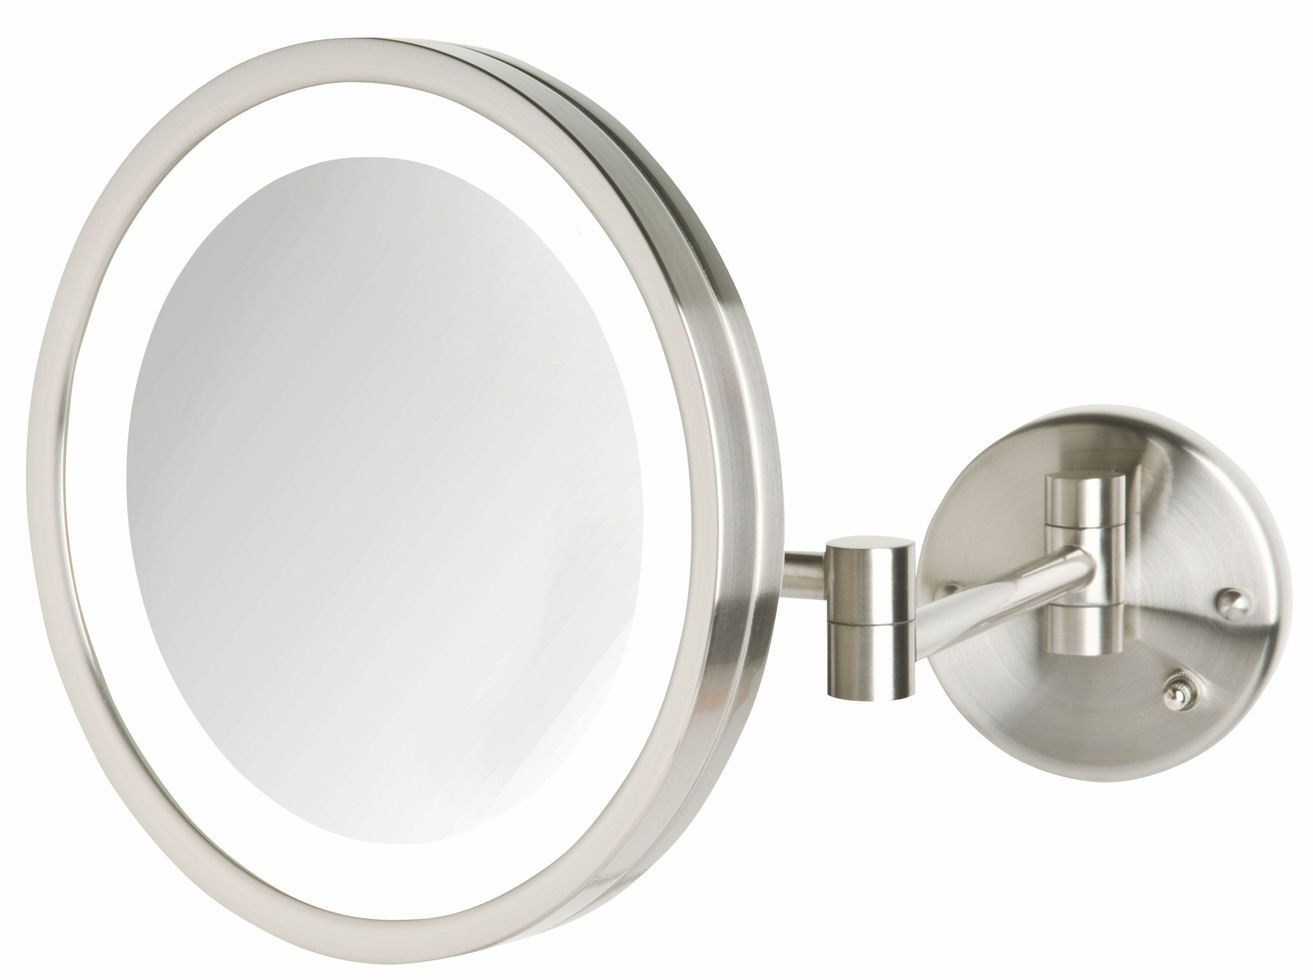 10x Magnifying Lighted Makeup Mirror Swing Arm Wall Mount | http ...